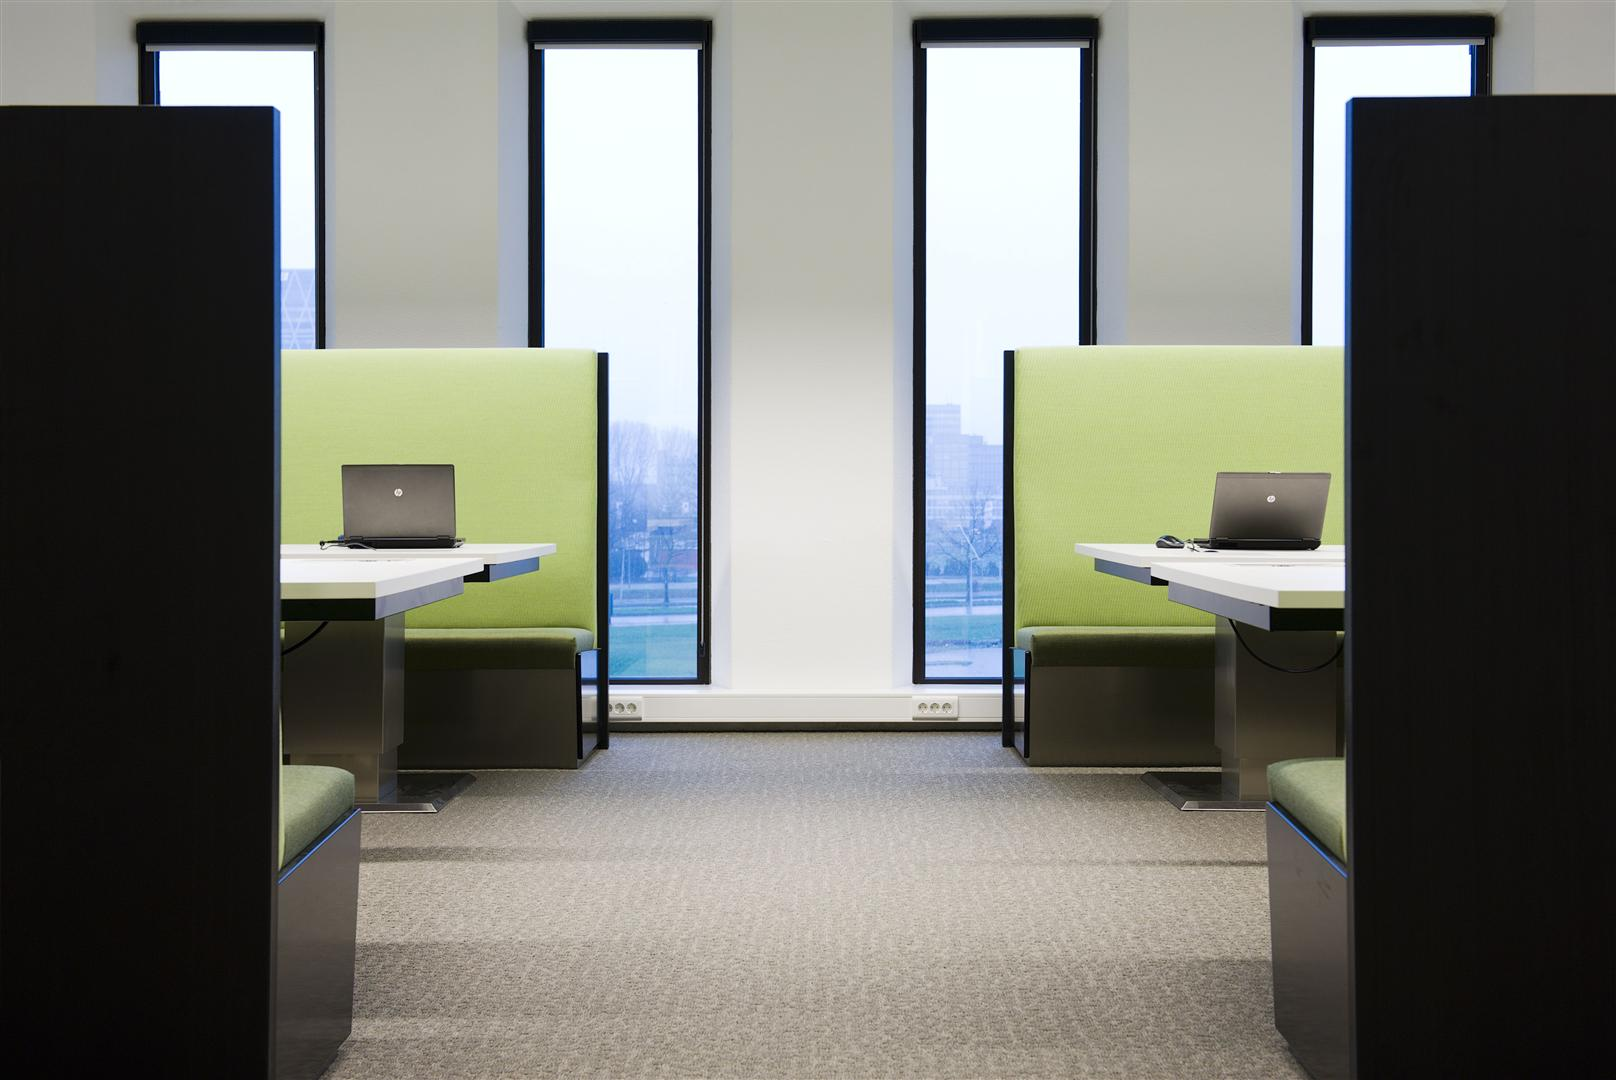 CBRE - Case Study - CBRE HQ The Netherlands - Symphony Offices, Zuidas, Amsterdam - Interior 07